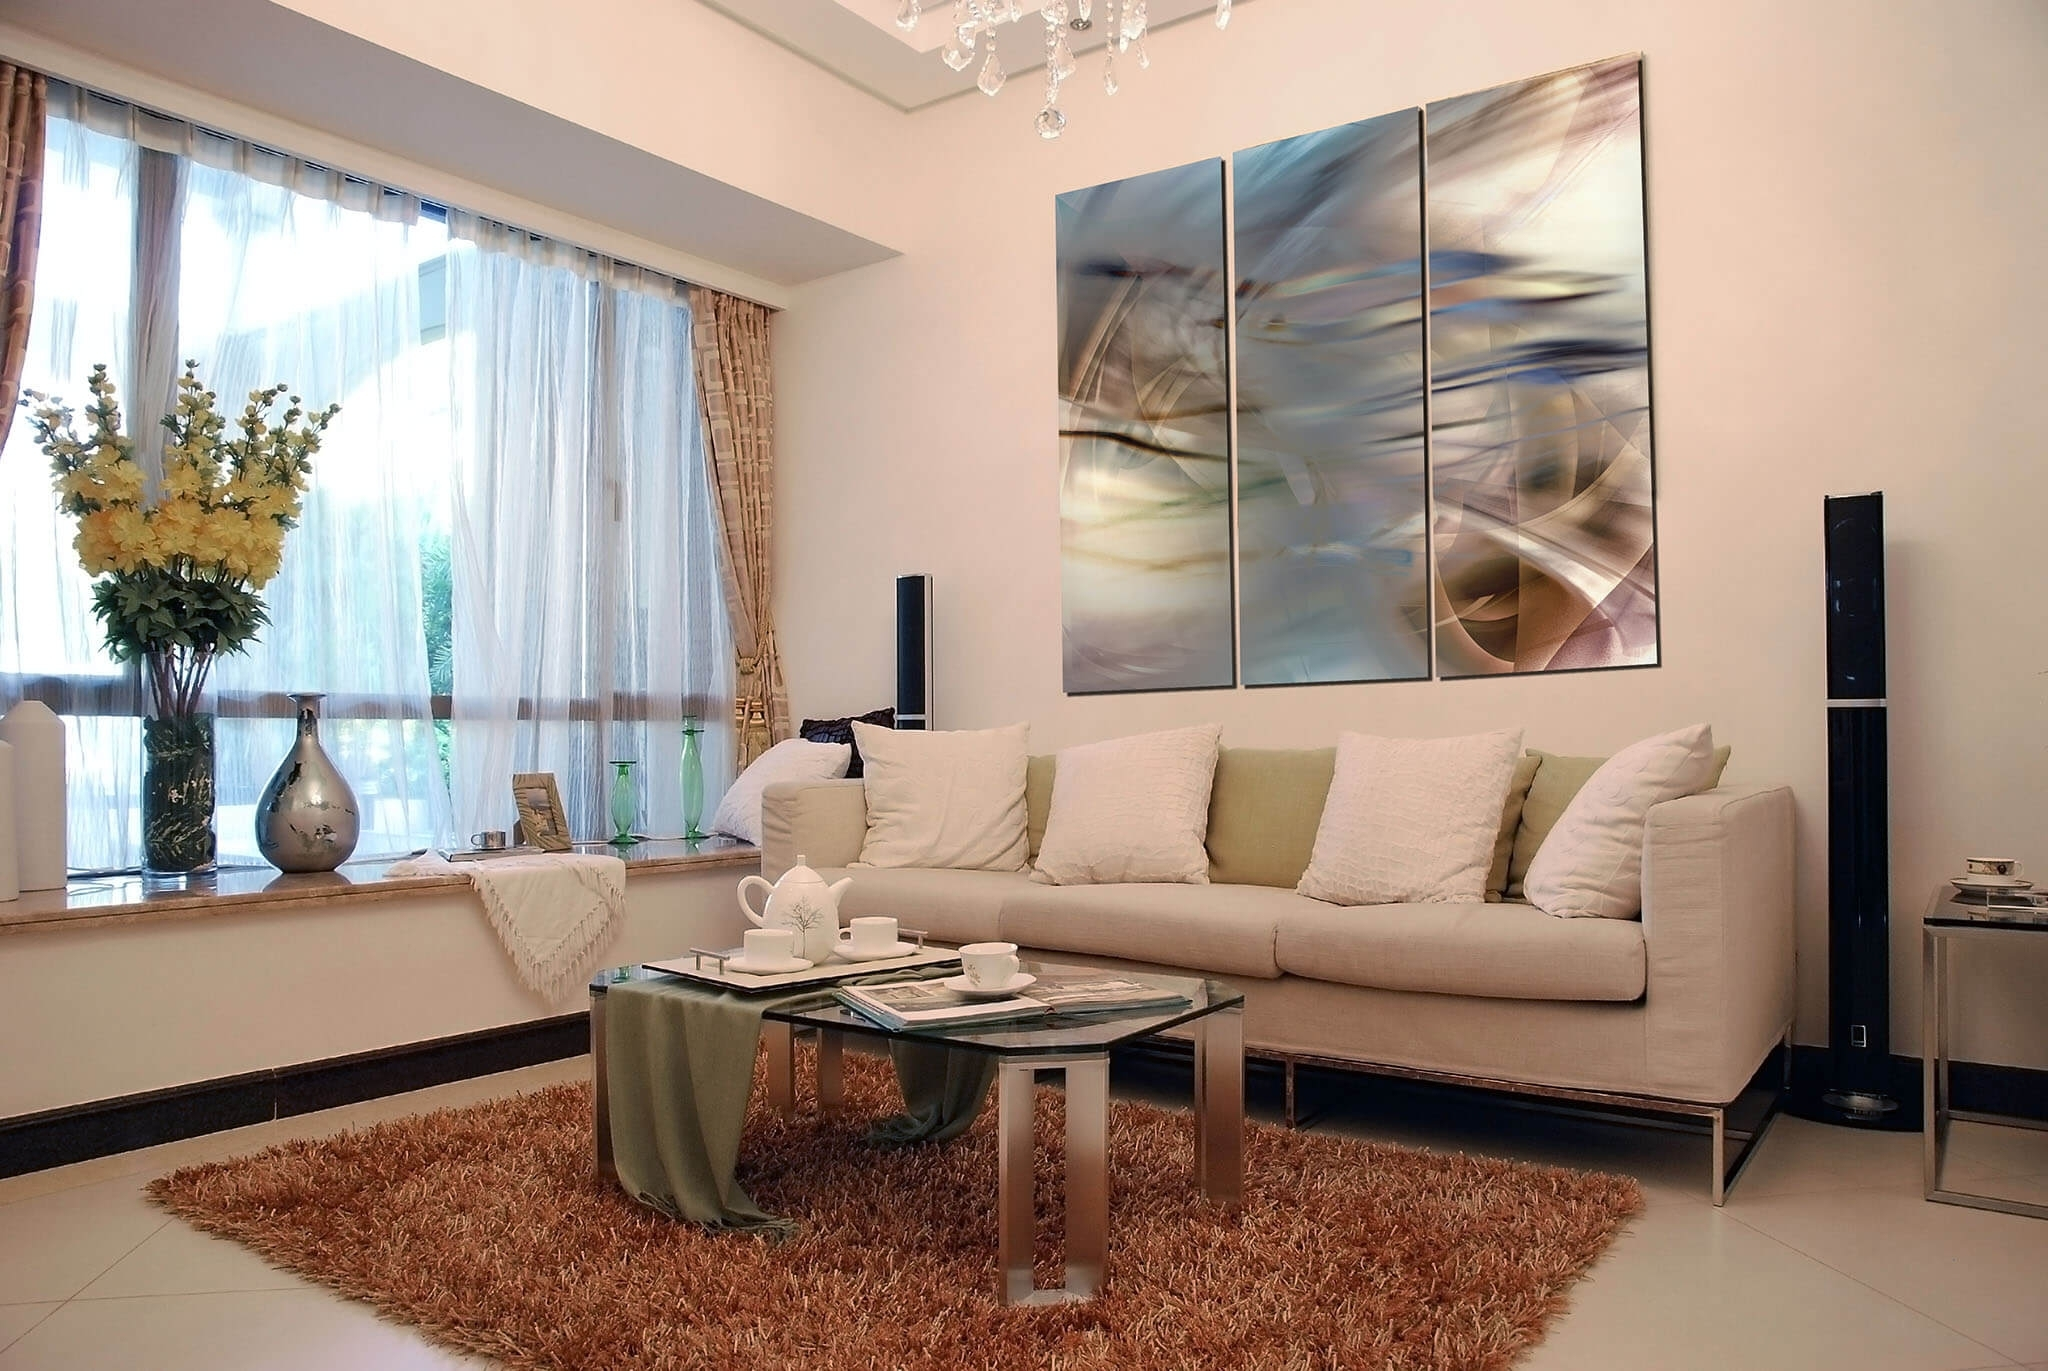 15 Large Artwork For Living Room, Large Wall Art For Living Rooms Regarding Framed Wall Art For Living Room (Photo 11 of 20)